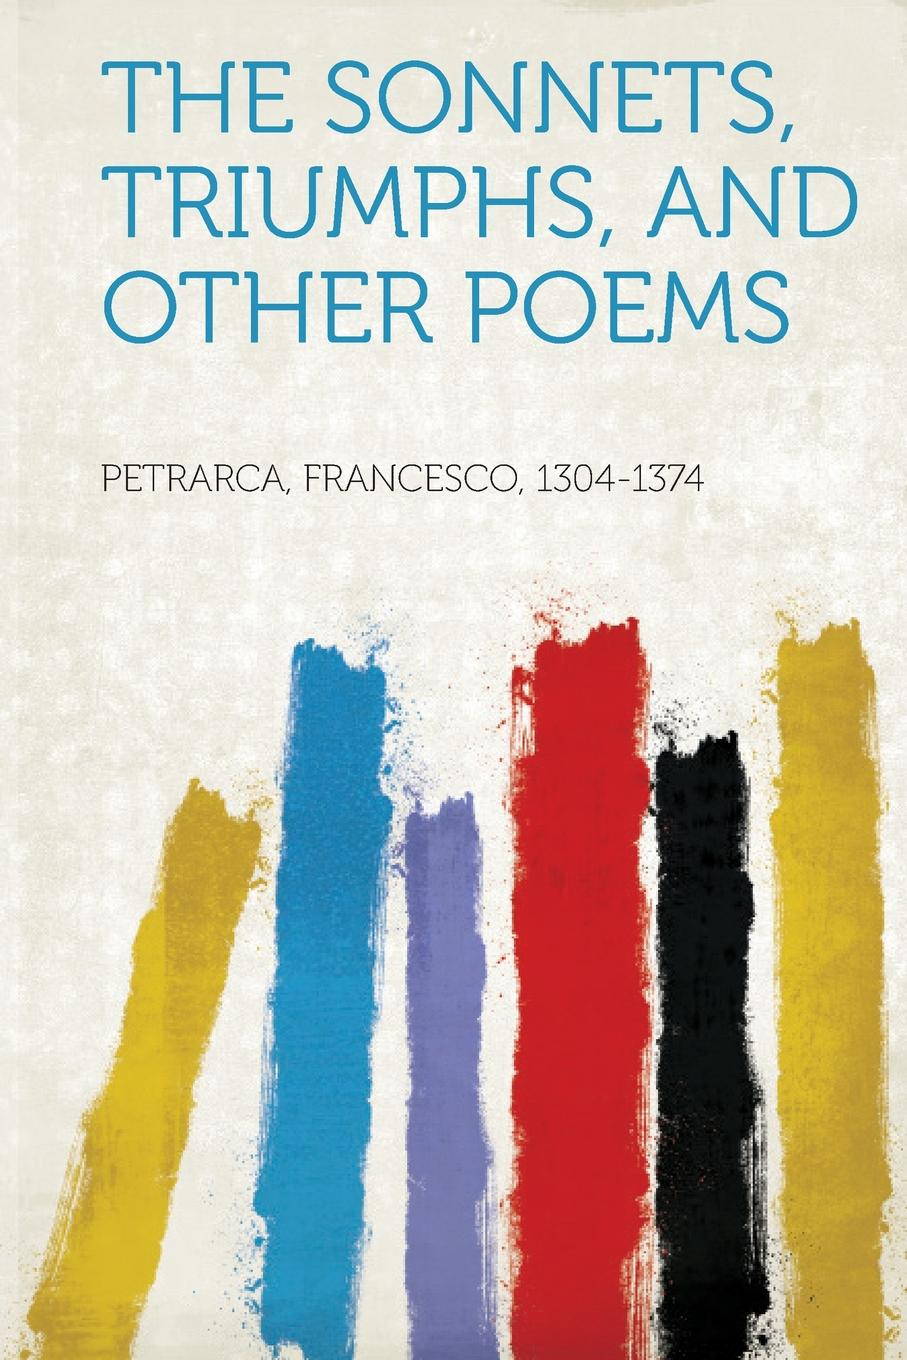 Petrarca Francesco 1304-1374 The Sonnets, Triumphs, and Other Poems